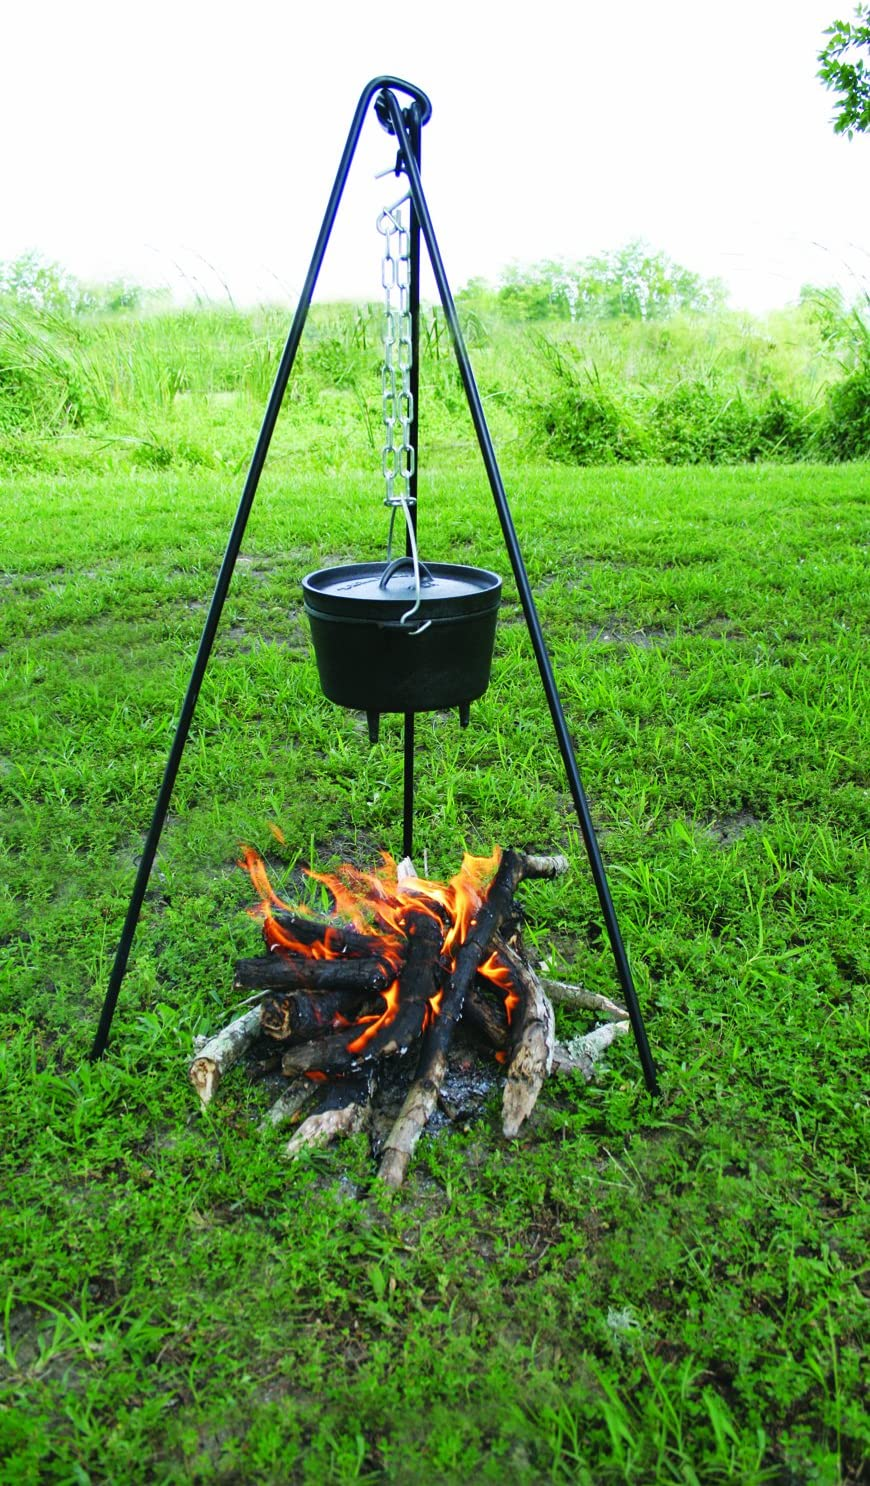 Campfire Cooking Dutch Oven Tripod And Lantern Hanger